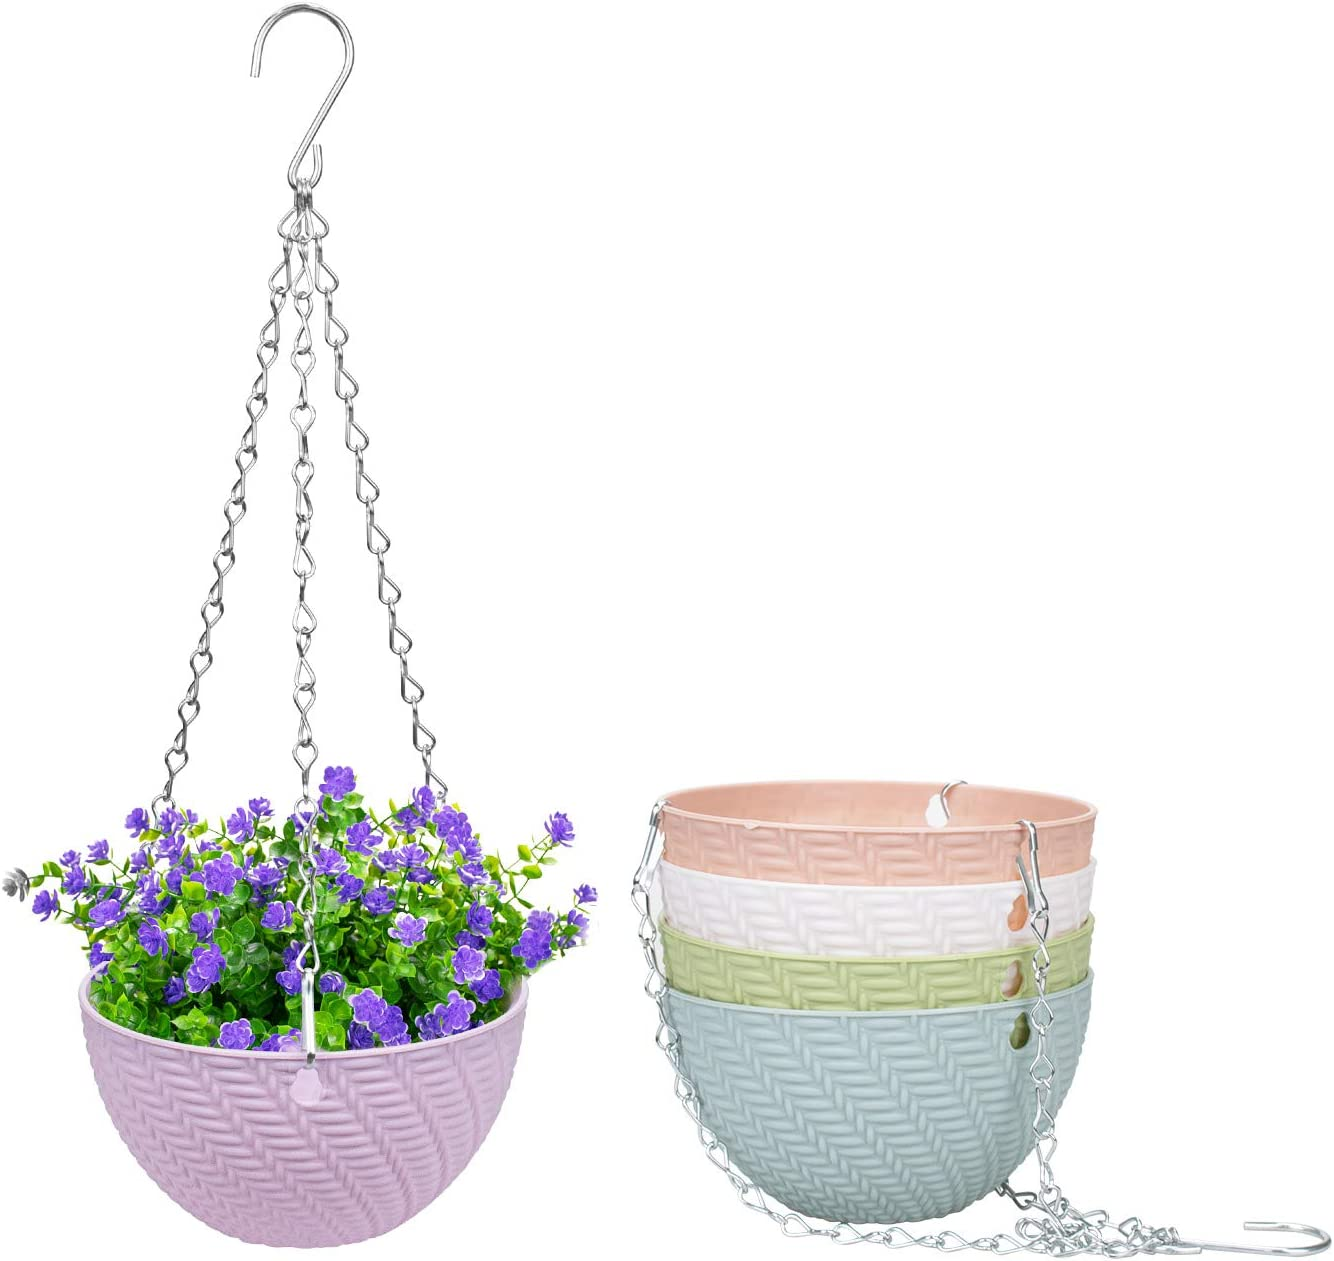 4 years warranty Foraineam 5 Pack Max 59% OFF Mini Hanging Planters Flow Self-Watering Garden